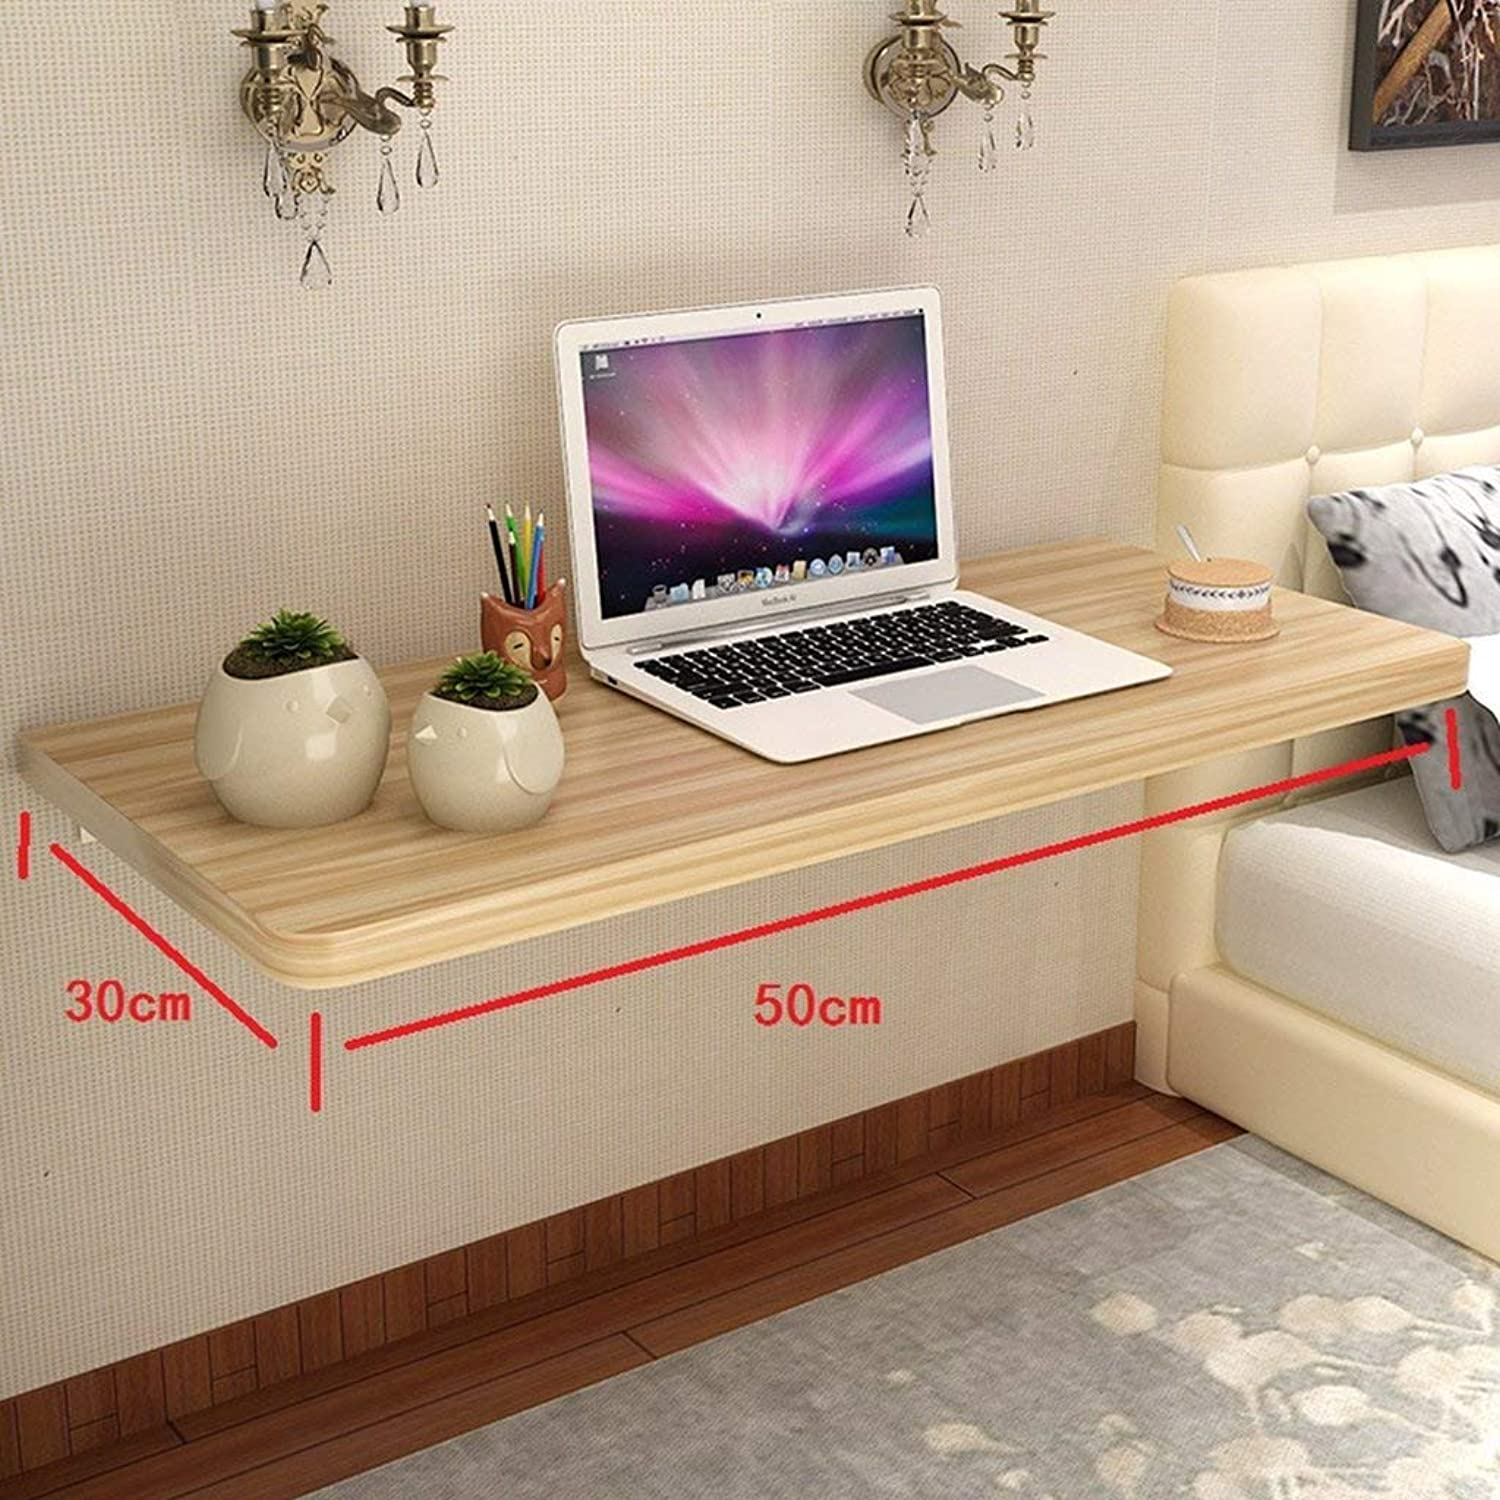 Chuan Han Household Simple Wall-Mounted Drop-Leaf Table Wall Table Foldable Kitchen & Dining Table Wall Table Computer Desk Adapts to Any Space